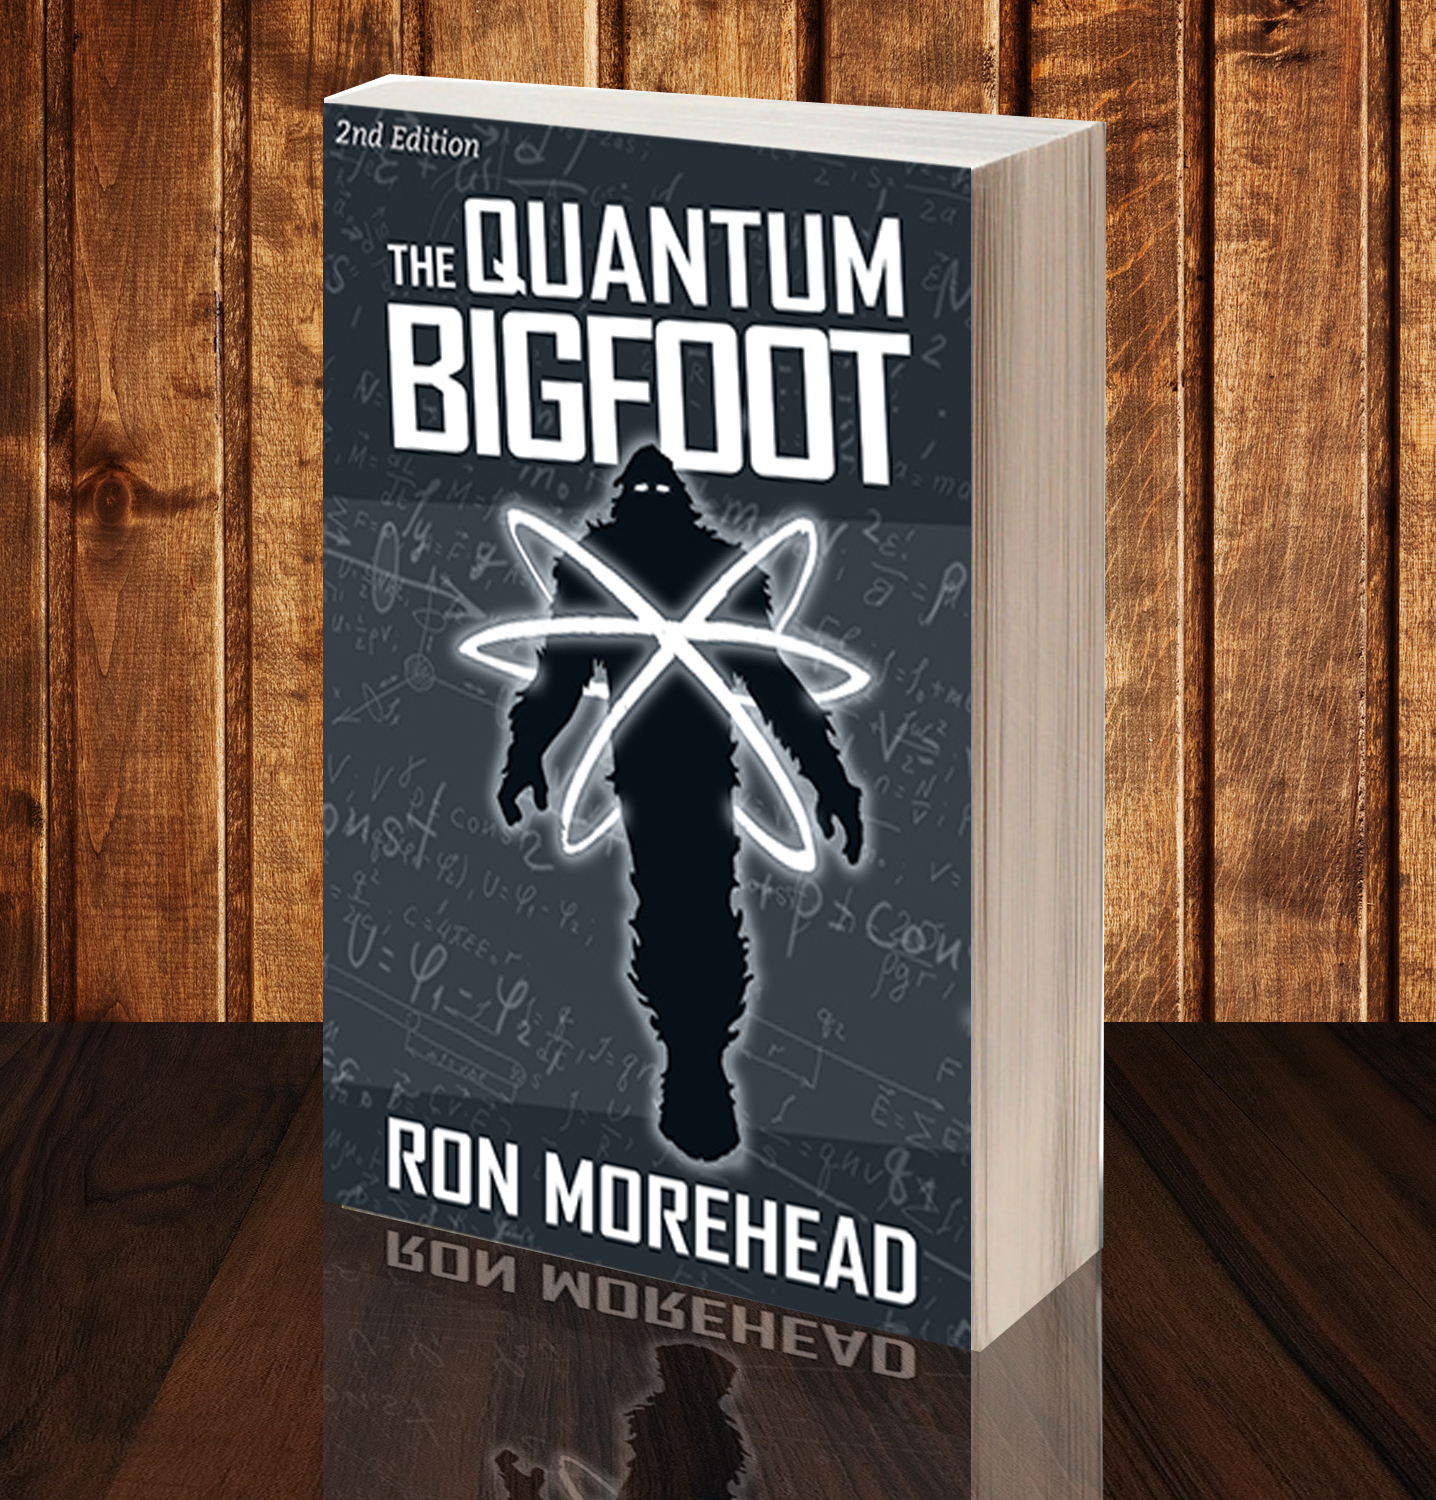 The-Quantum_bigfoot_Book_on_coffee_table